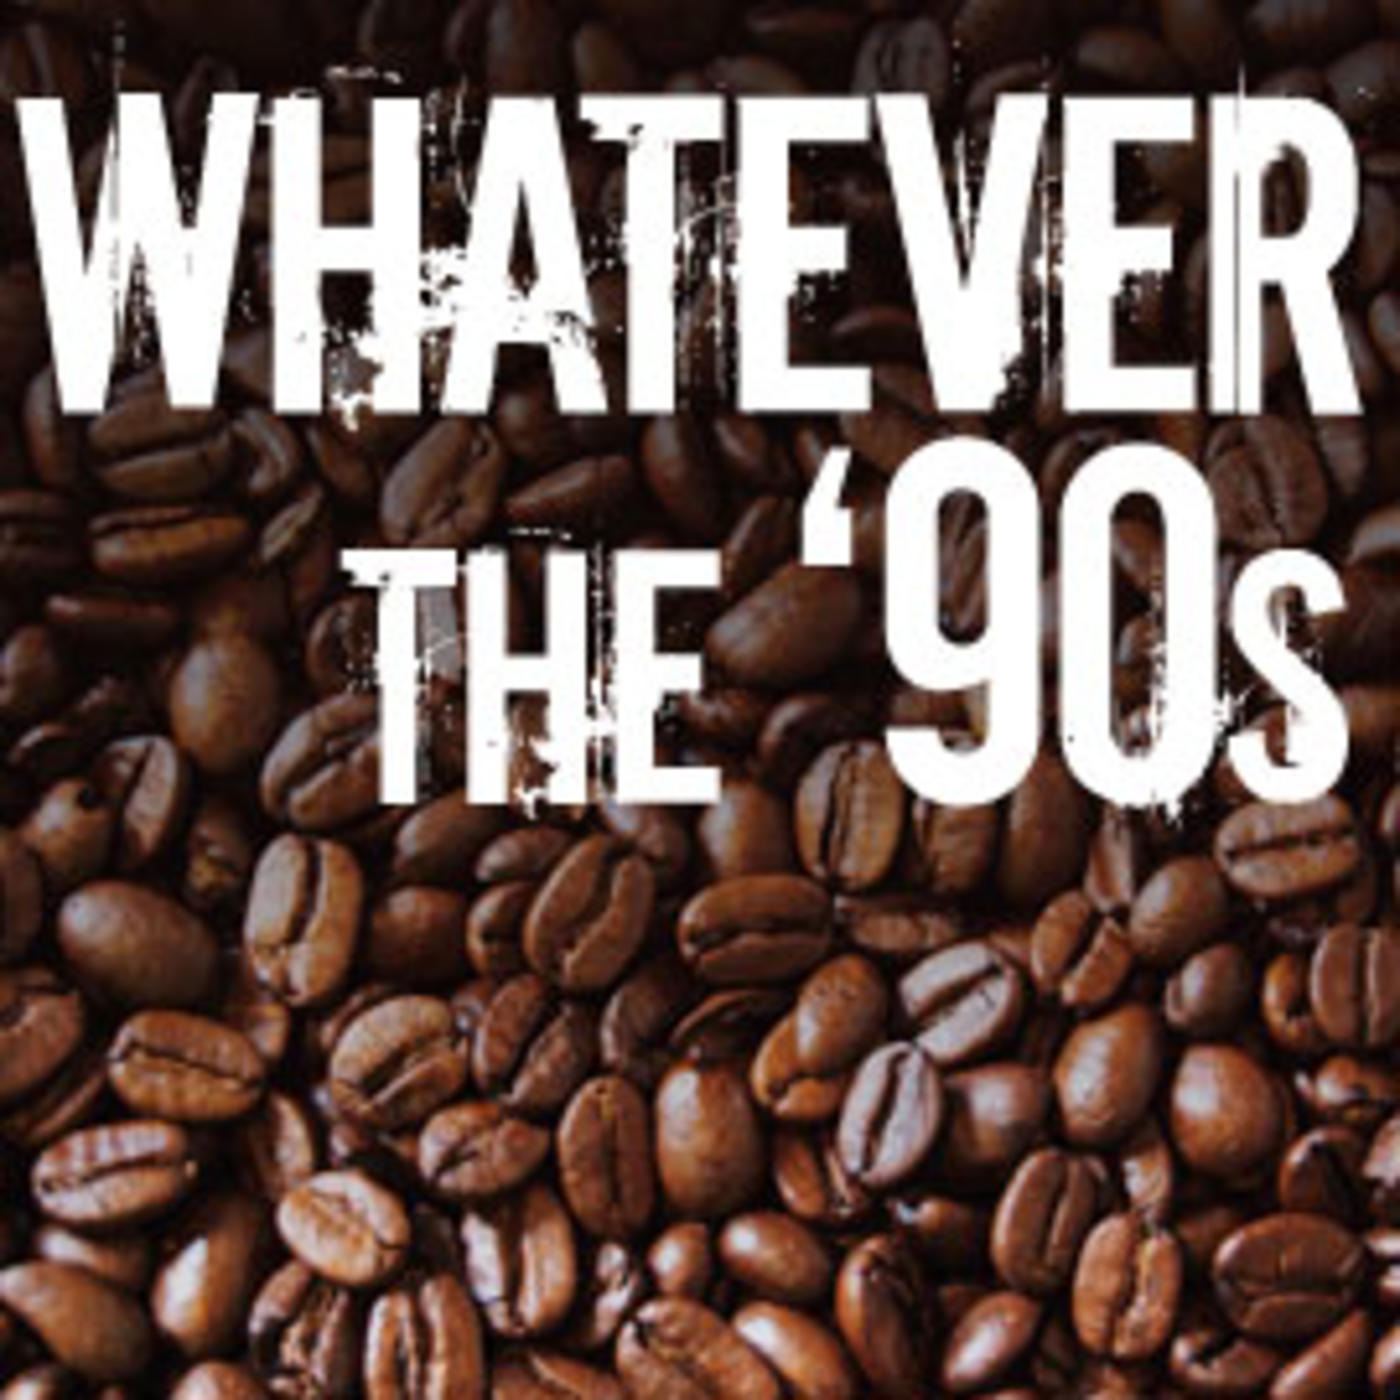 Whatever! The 90s - Red Hot Chili Peppers, Faith No More, Radiohead, Everclear, Soundgarden, Stone Temple Pilots, New Order, The La's, Beck, Matthew Sweet